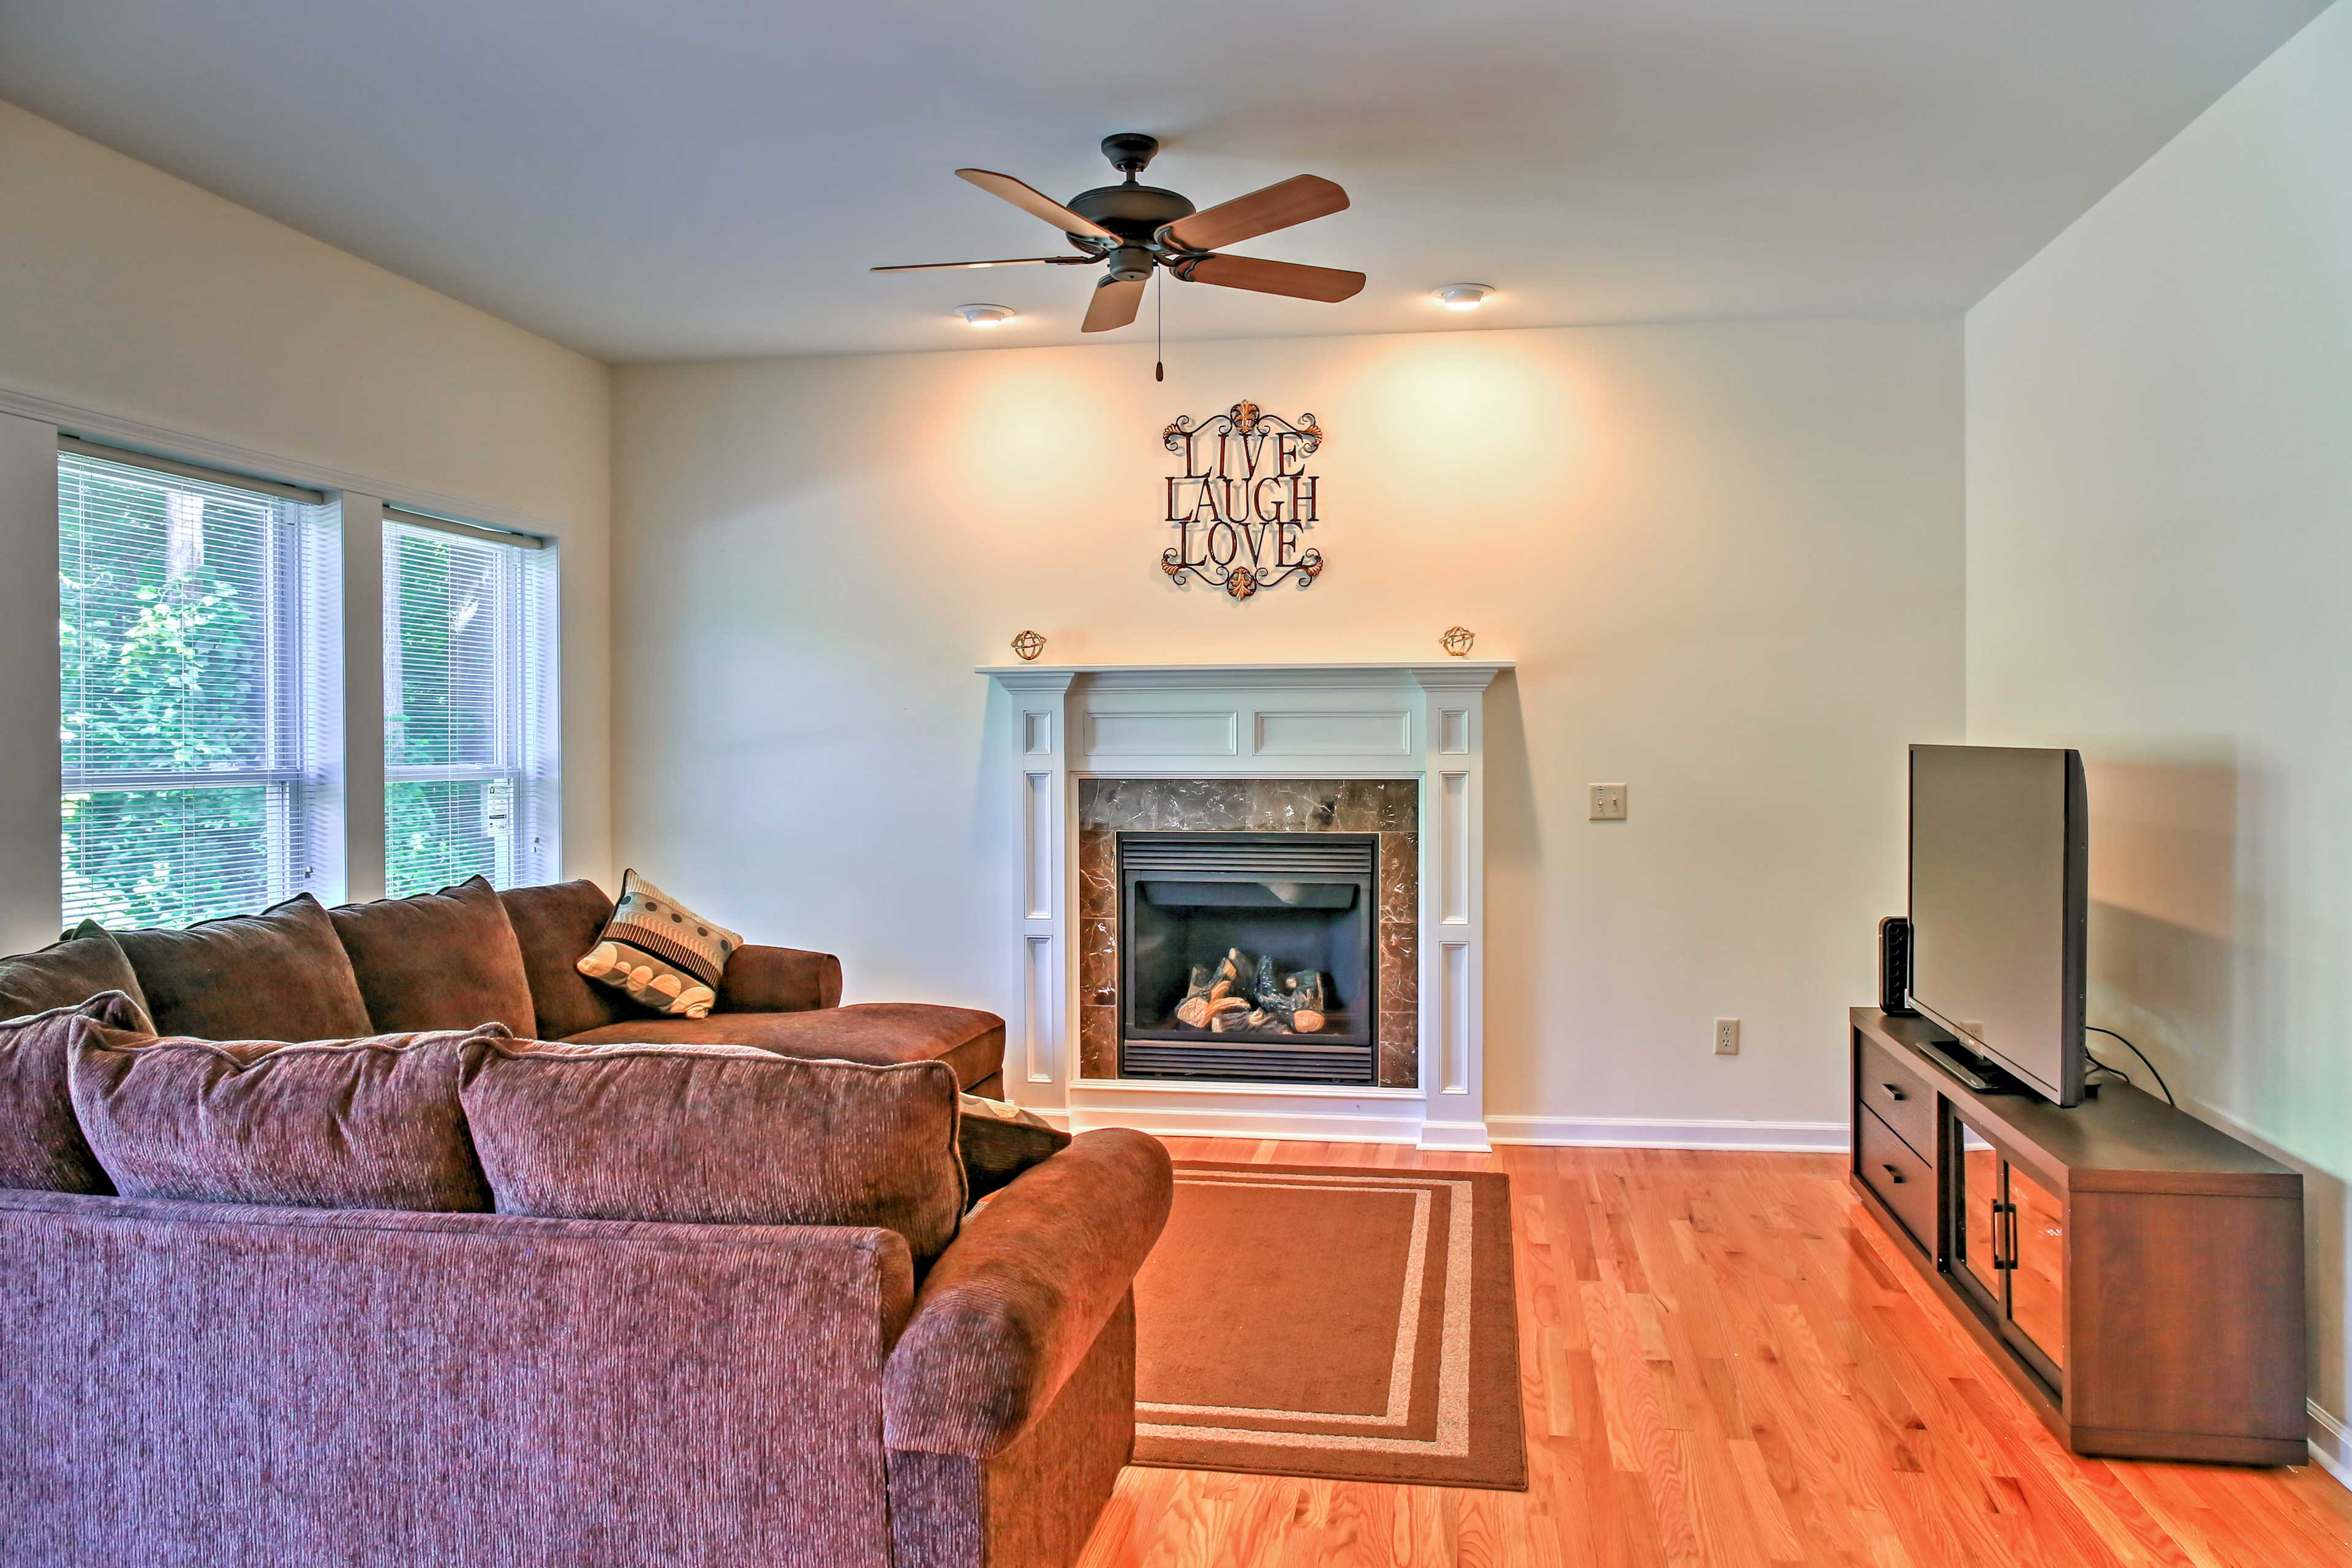 Cozy up in the den area with a fireplace and 55-inch flat-screen TV.